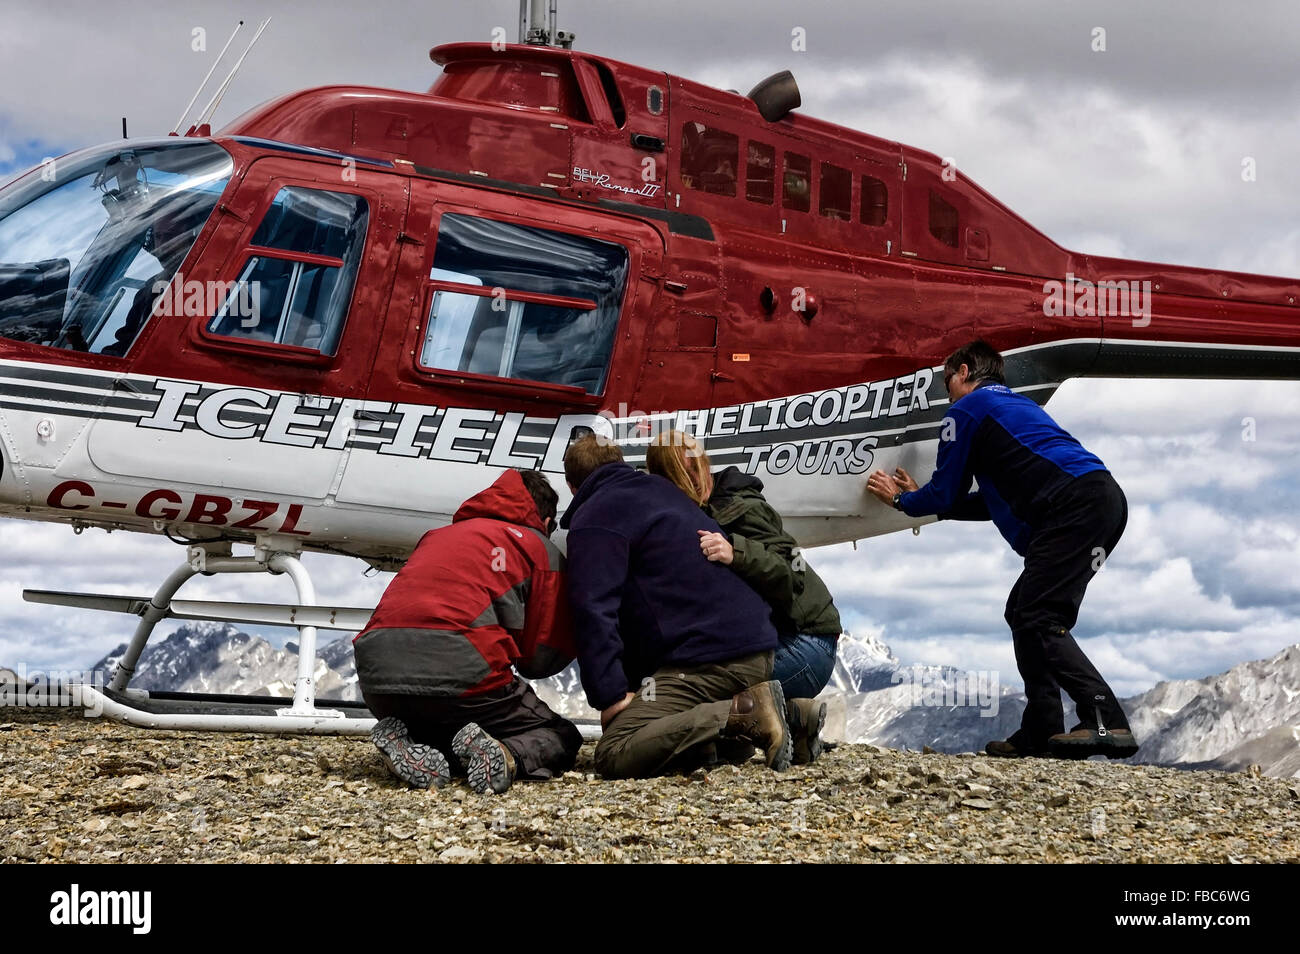 Heli-hiking at the Canadian Rockies. Canada. - Stock Image